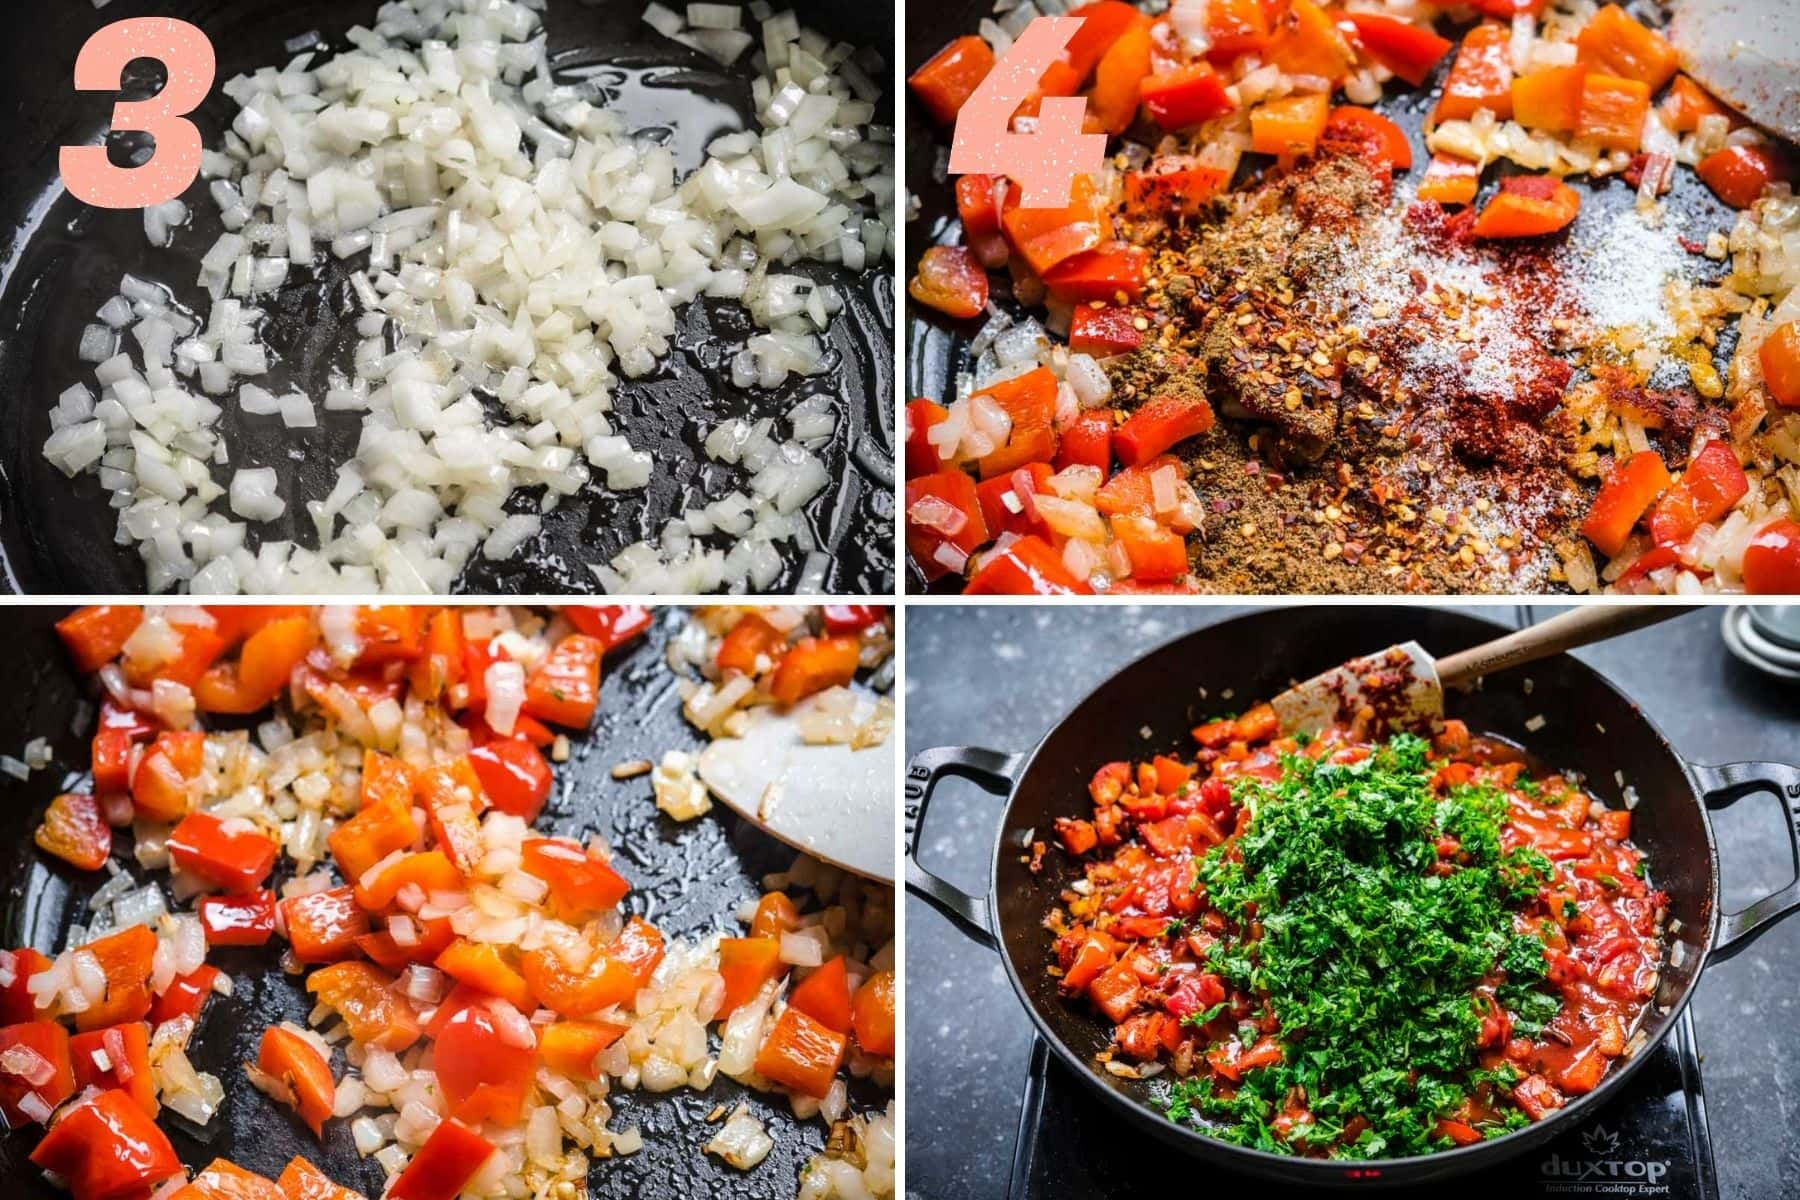 On the left: onions cooking in the skillet and then adding in bell pepper. On the right: spices, tomatoes, and parsley added to the skillet.